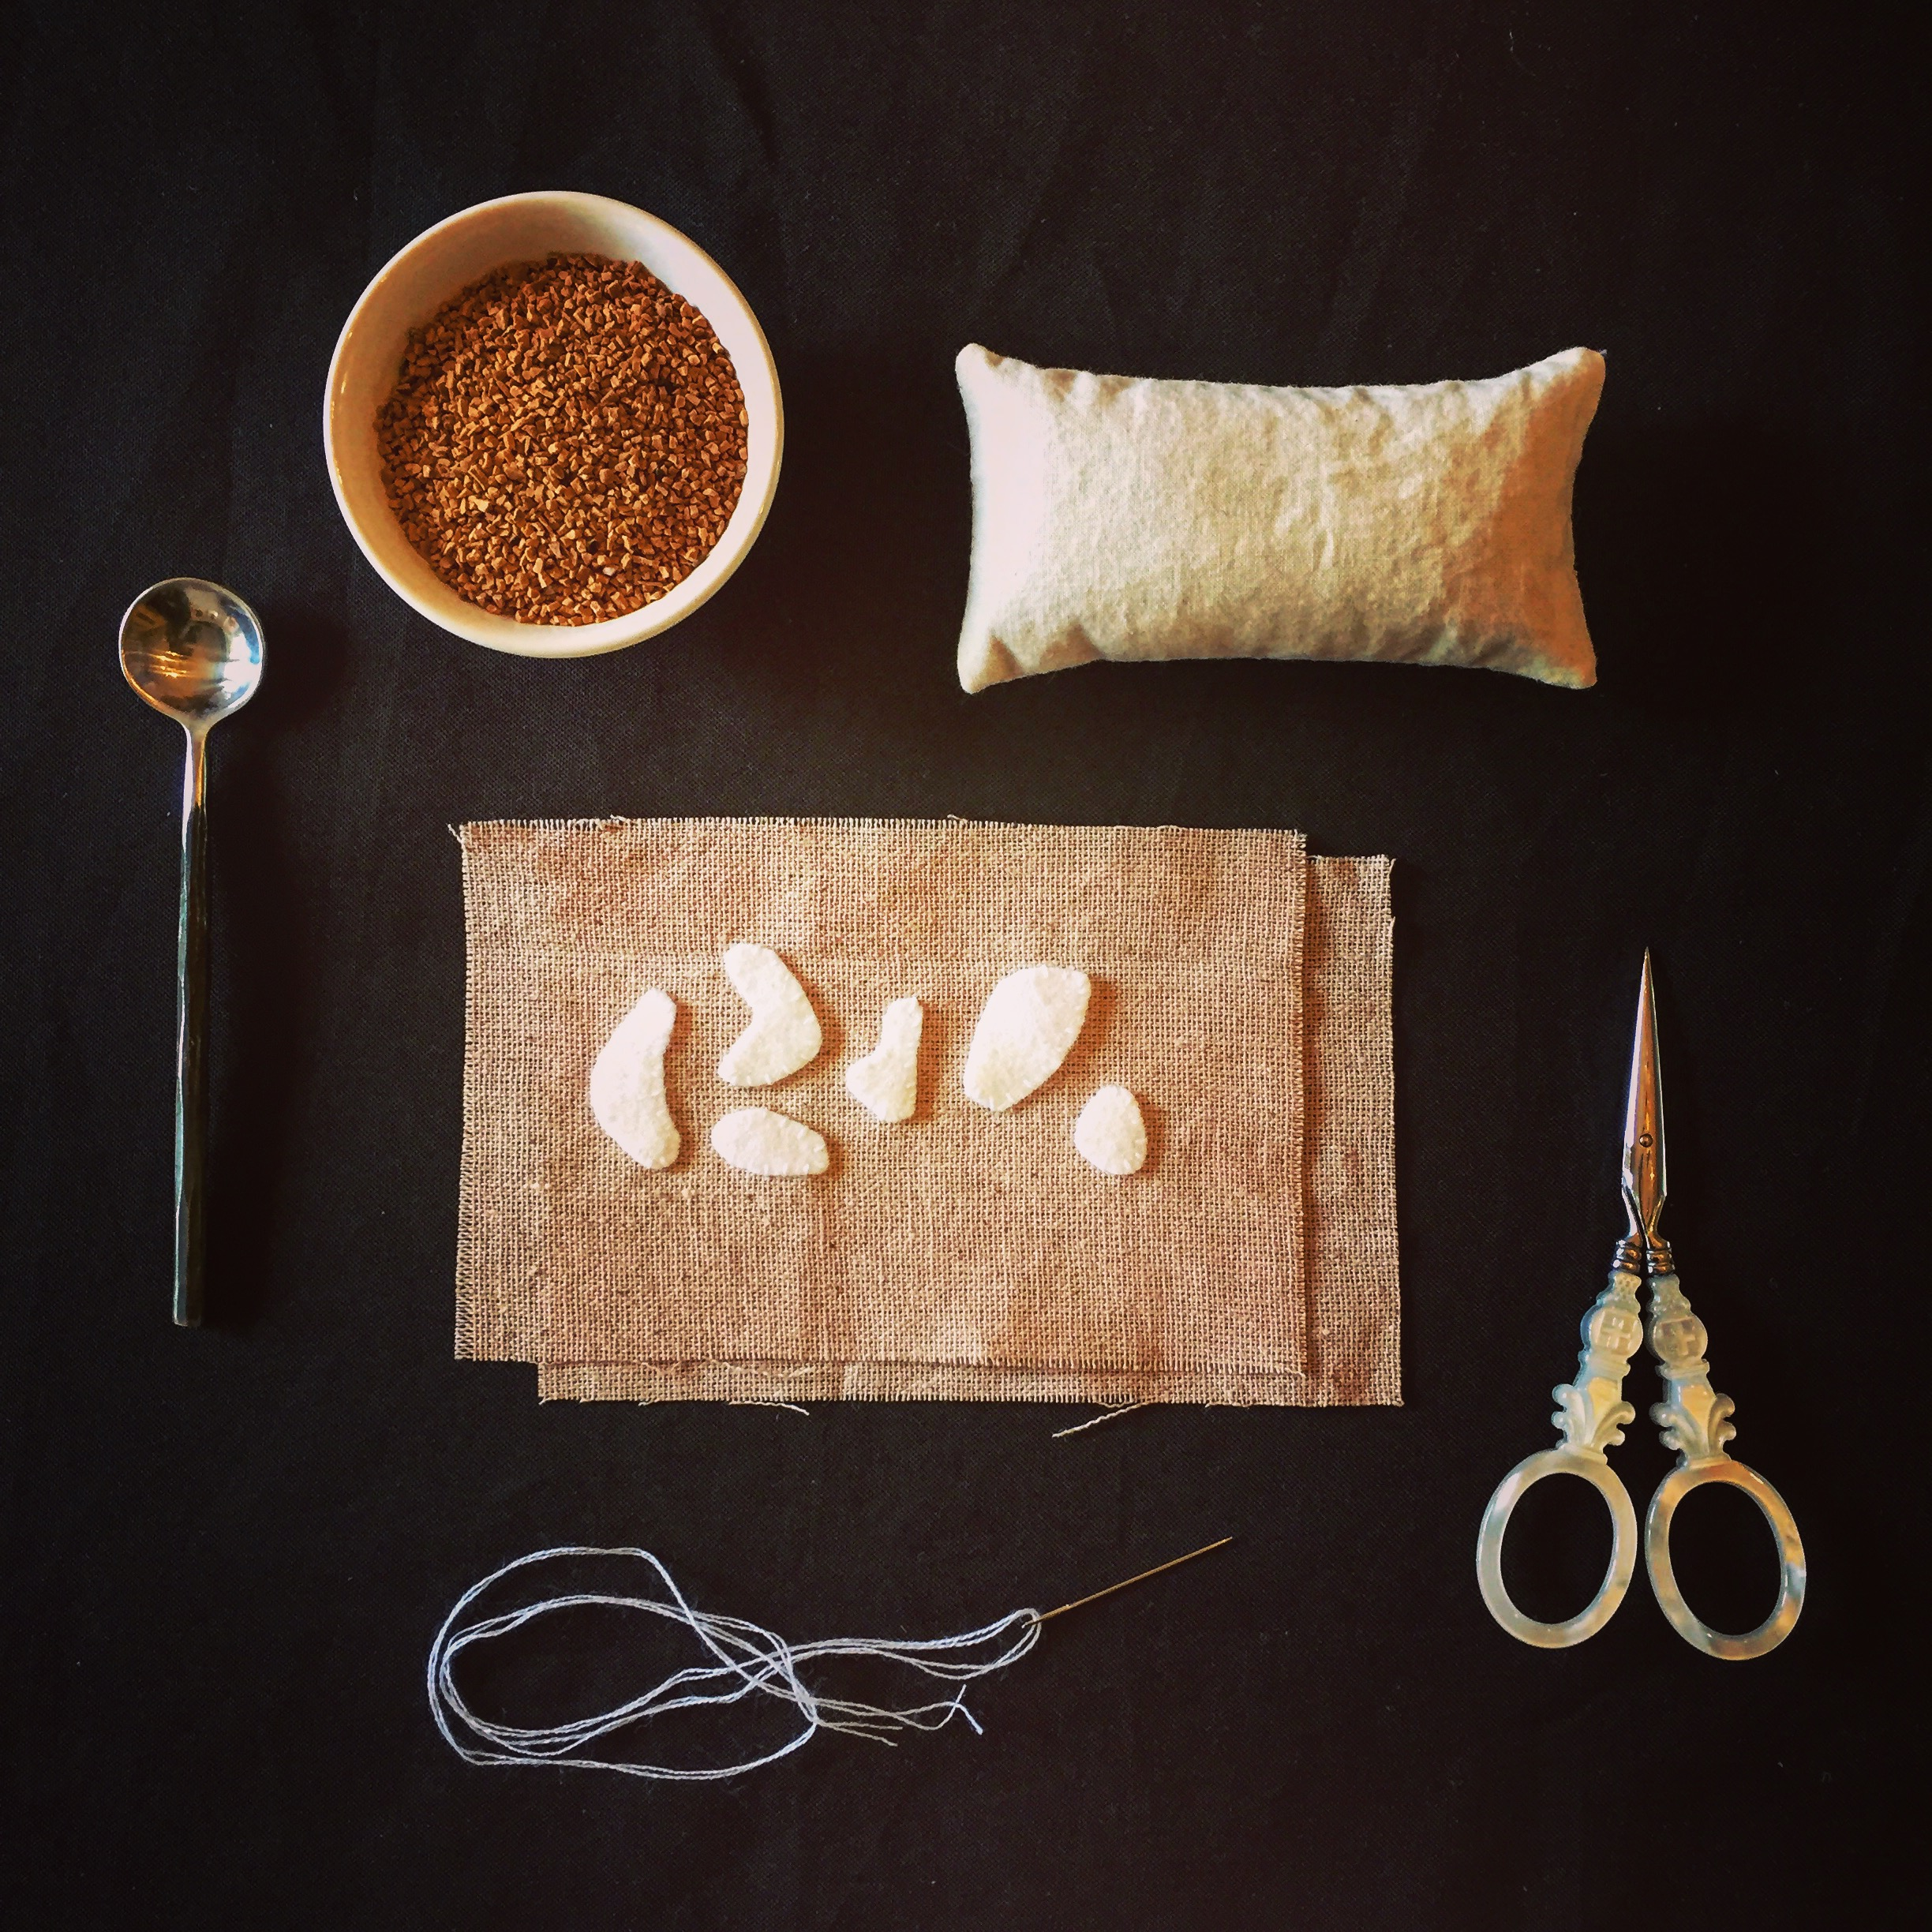 wool appliqué on osnaburg with muslin pouch filled with walnut shells